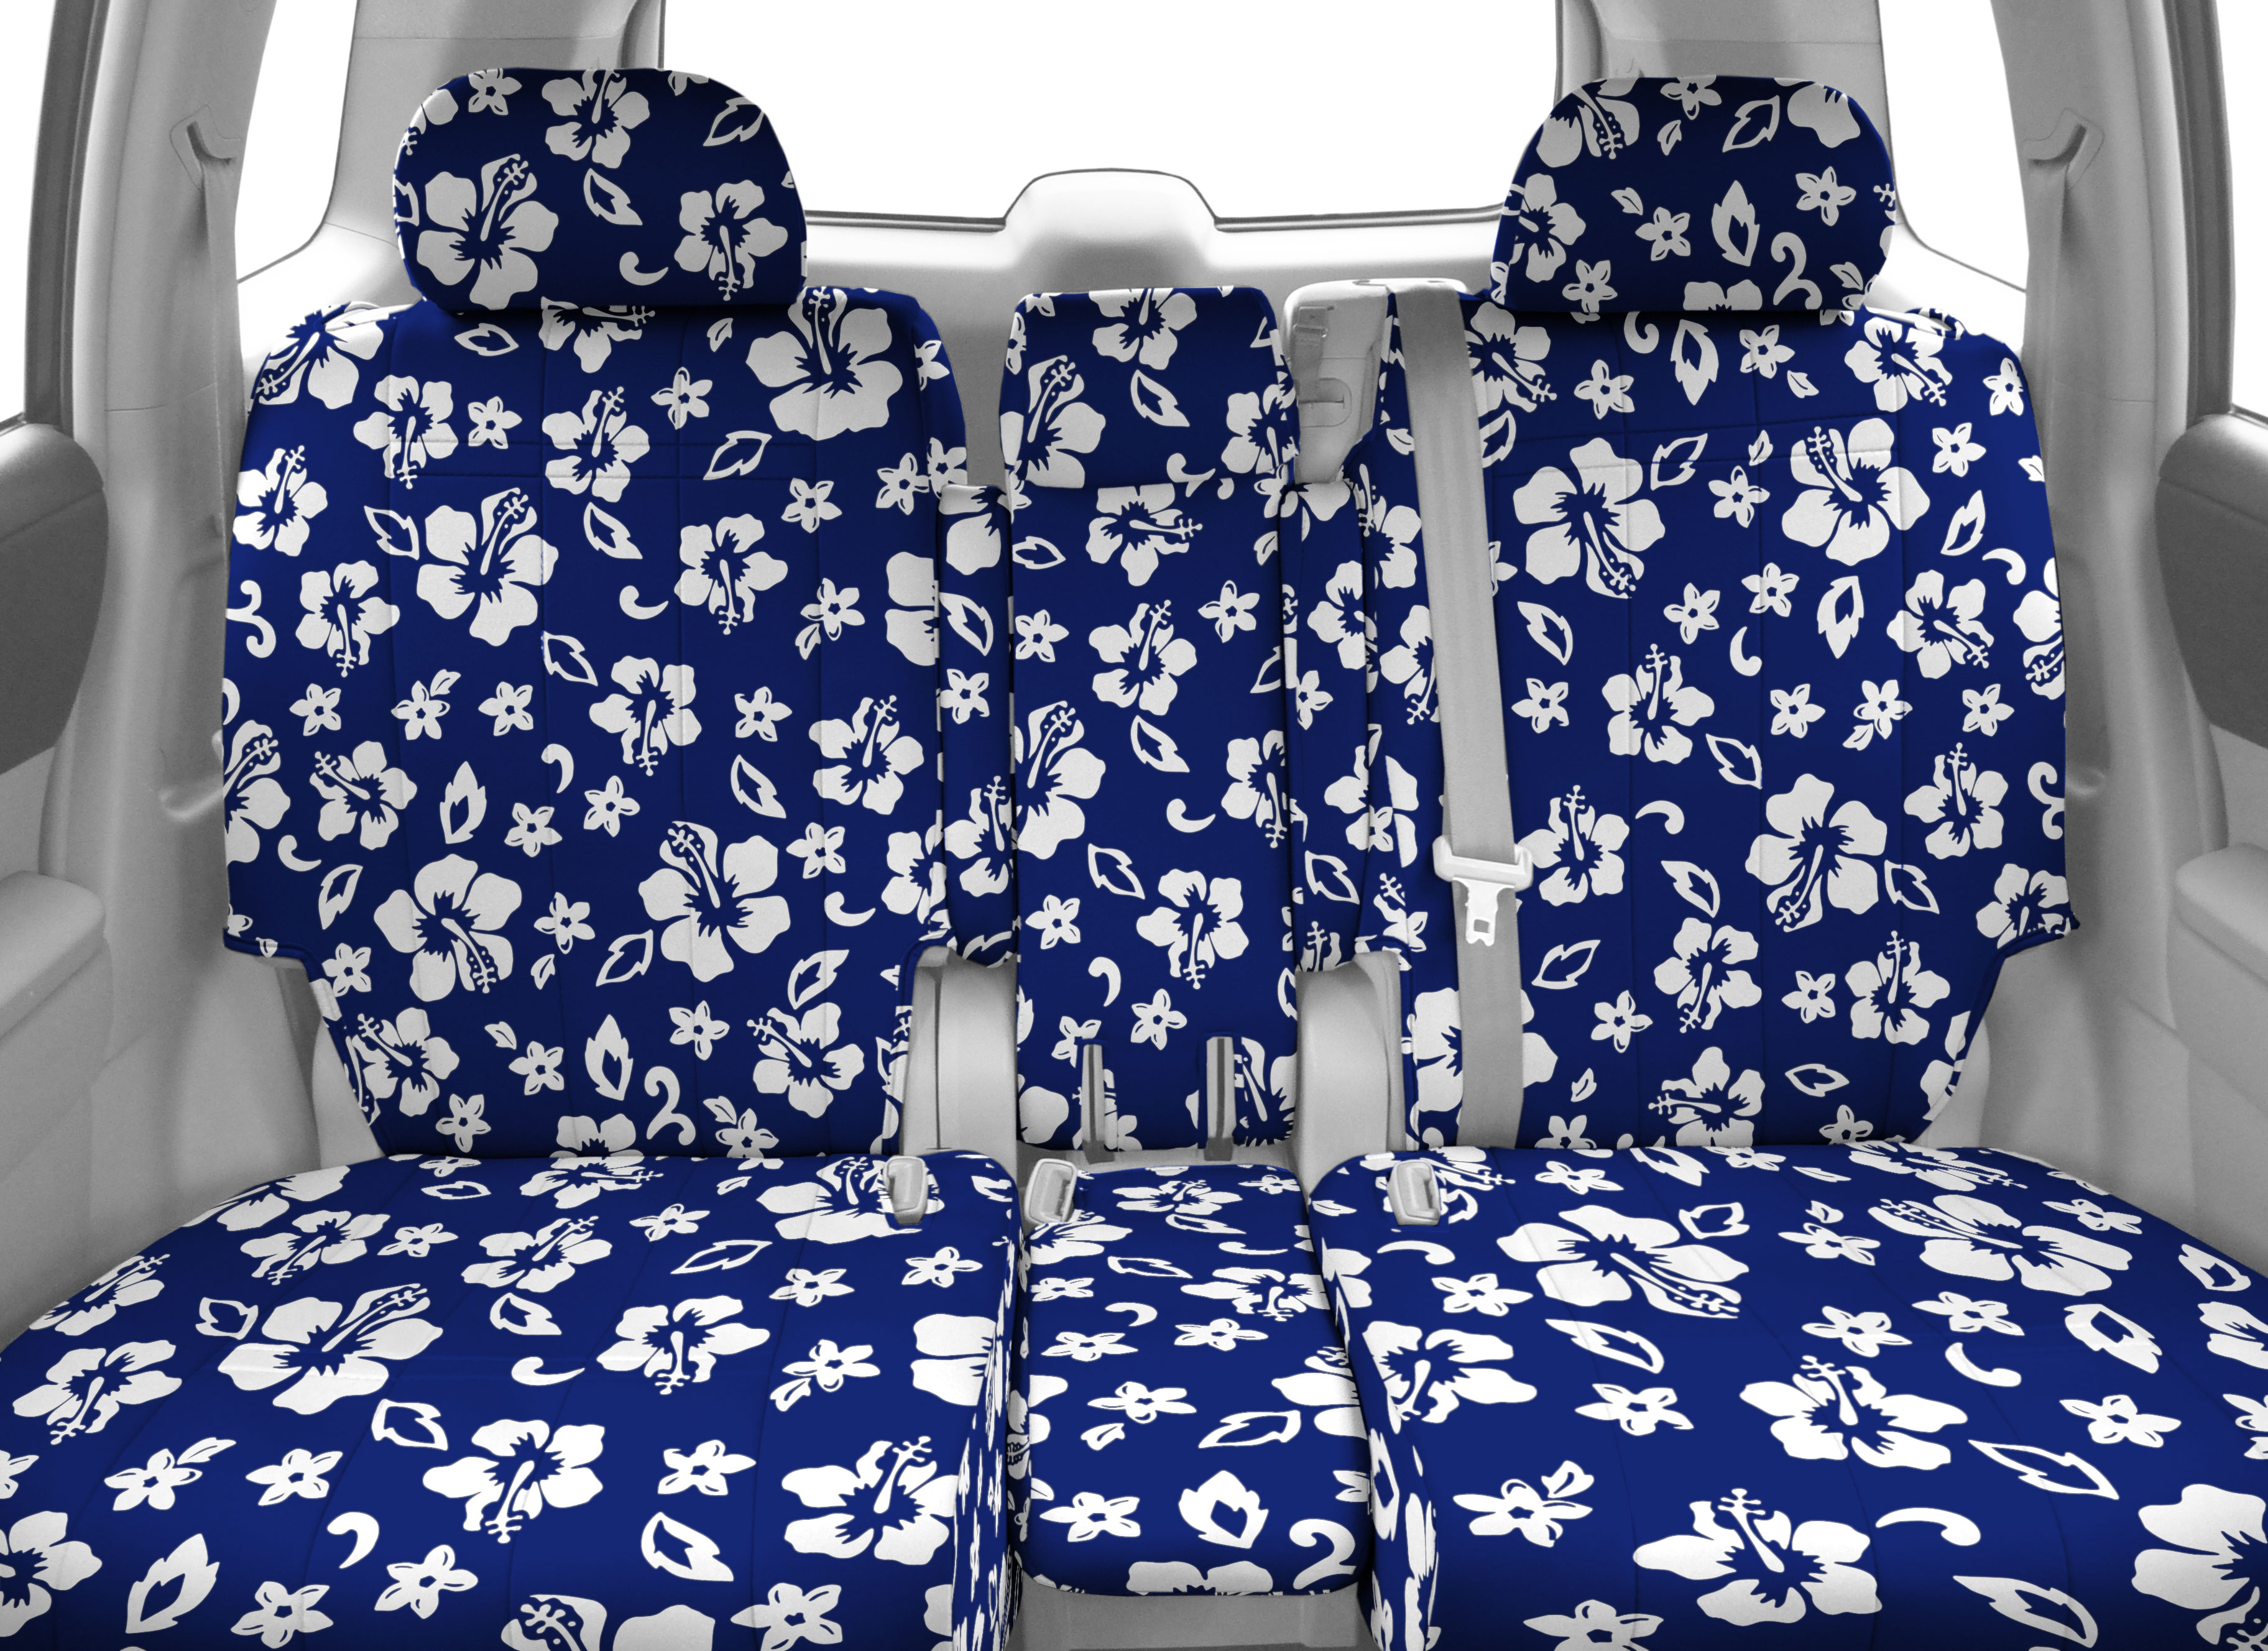 hawaiian chair covers bedroom stool caltrend seat for cars made in usa 43 best